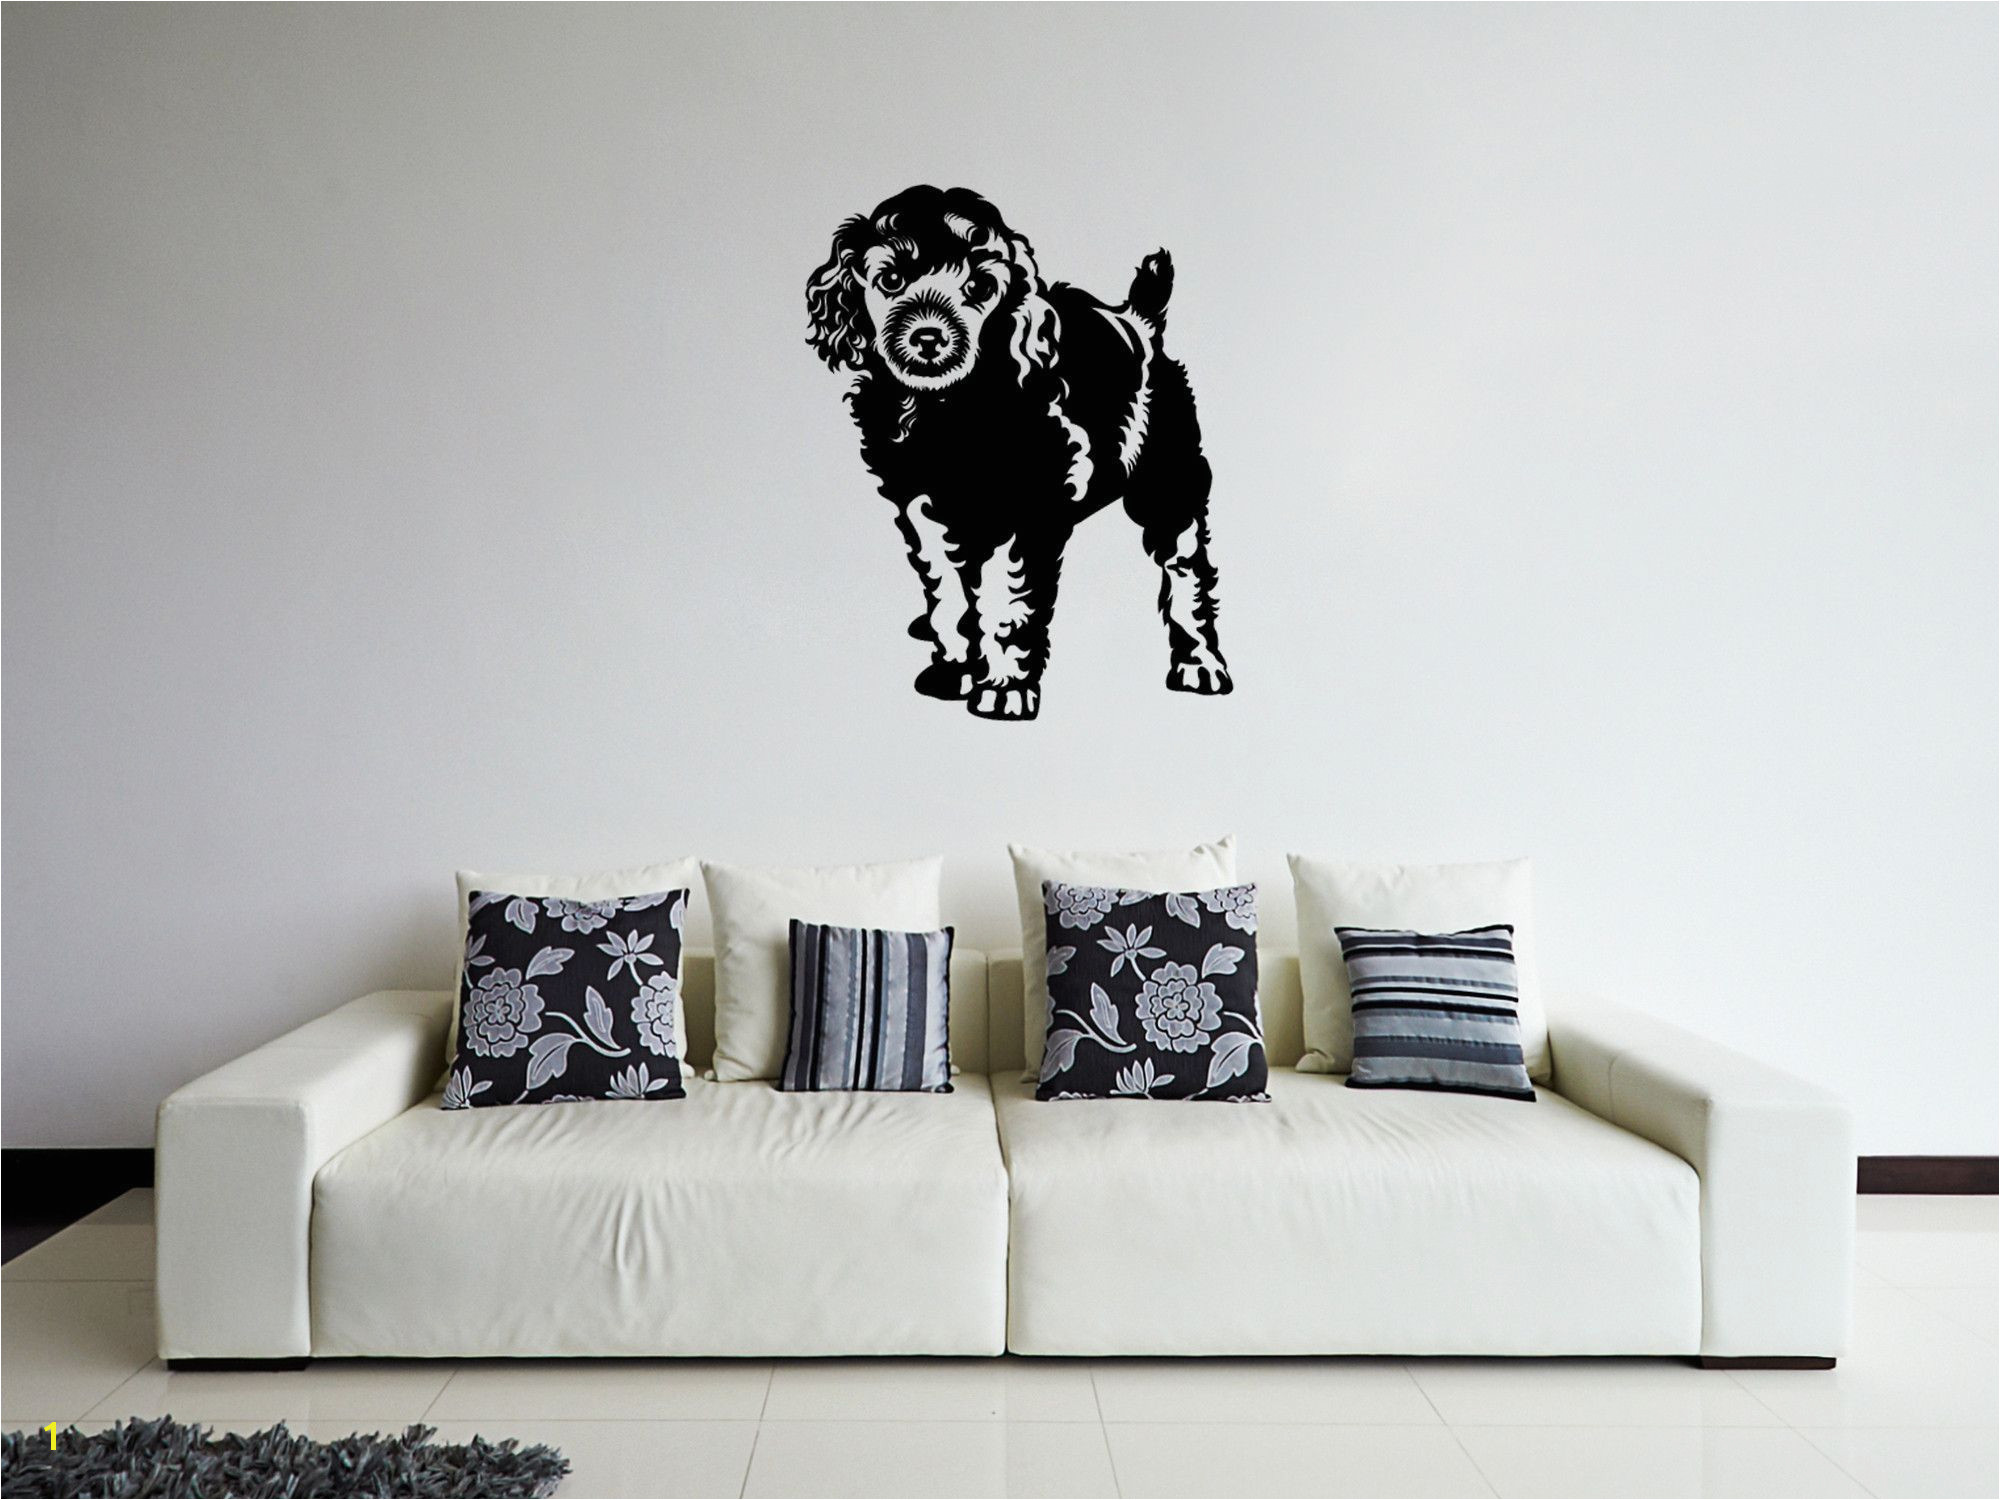 ik295 Wall Decal Sticker Decor cute dog animal interior bed kids